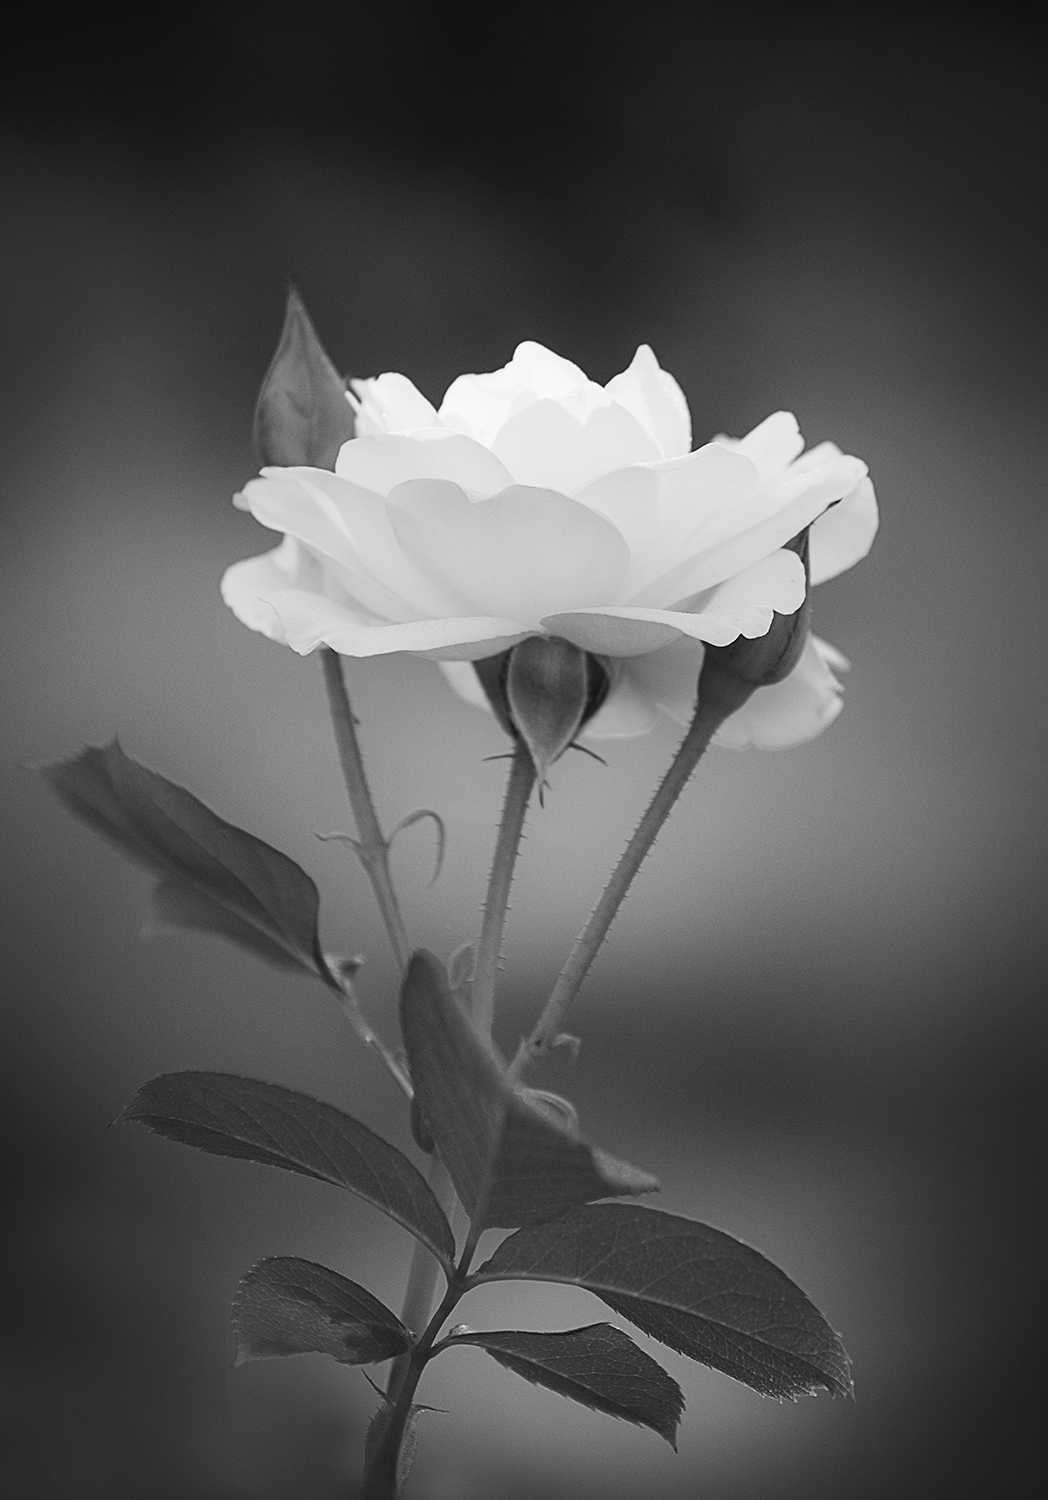 Purity and innocence tulip 4 by annette schreiber black and white